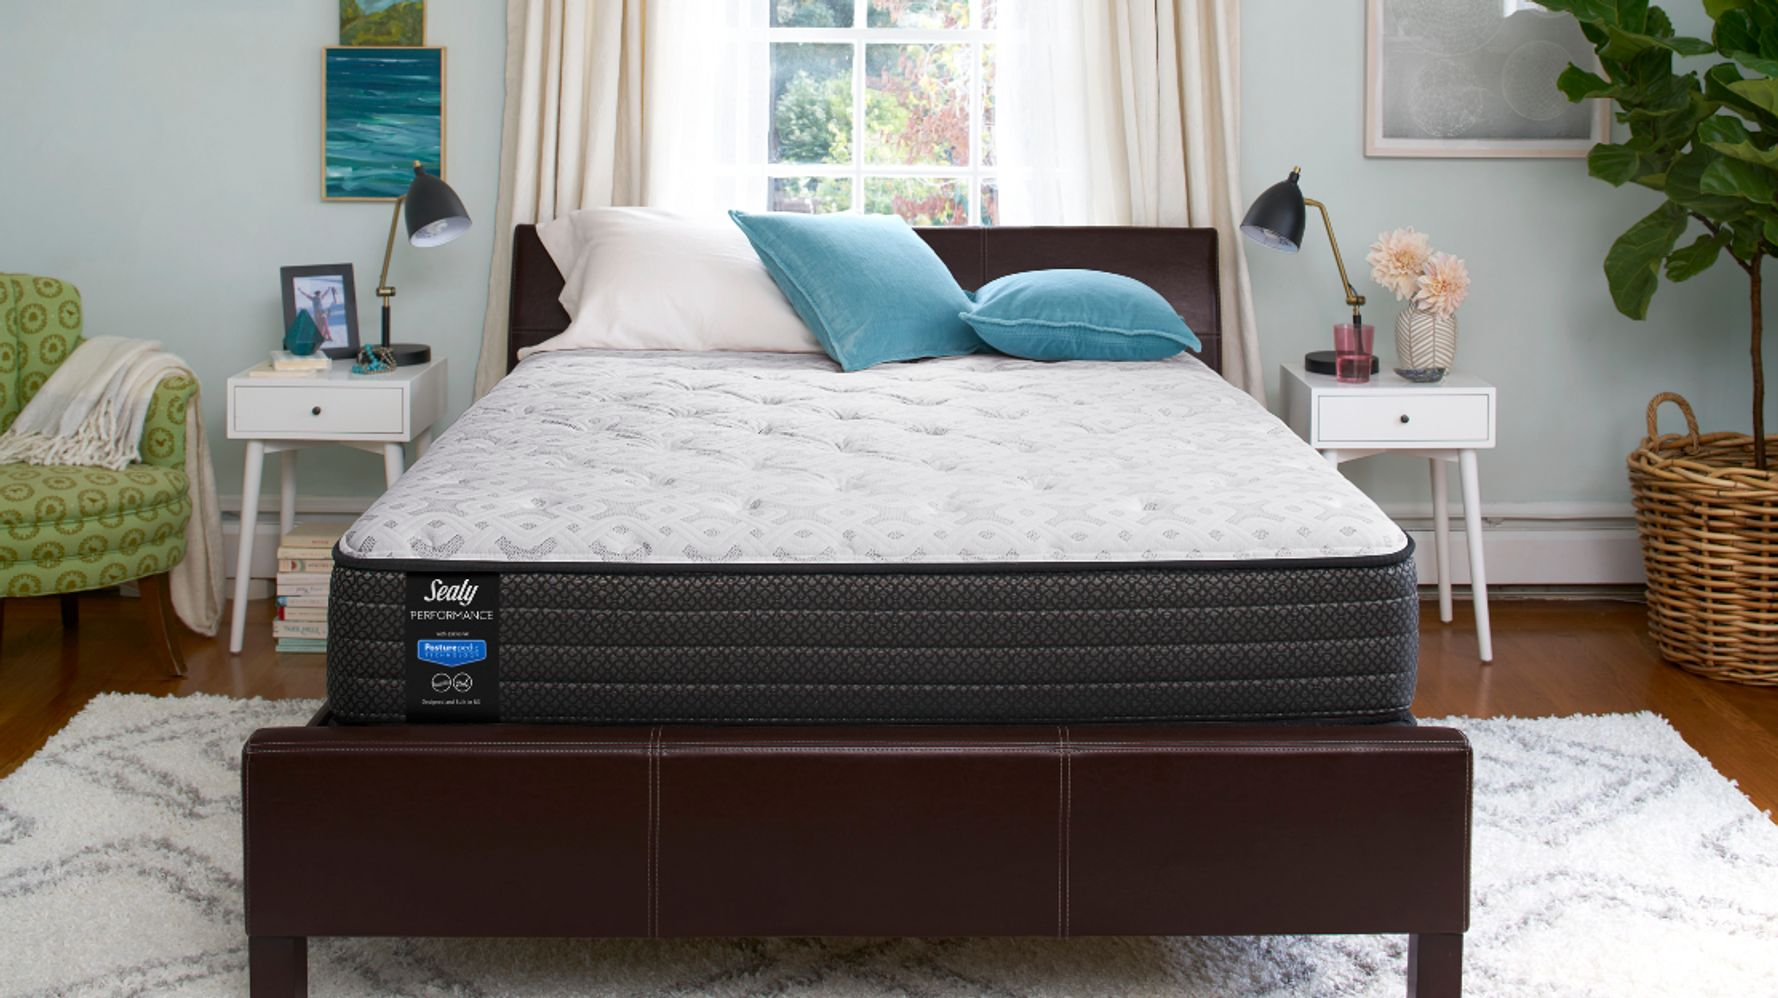 Cyber Monday 2018 Mattress Deals That Will Have You Resting Easy Huffpost Life